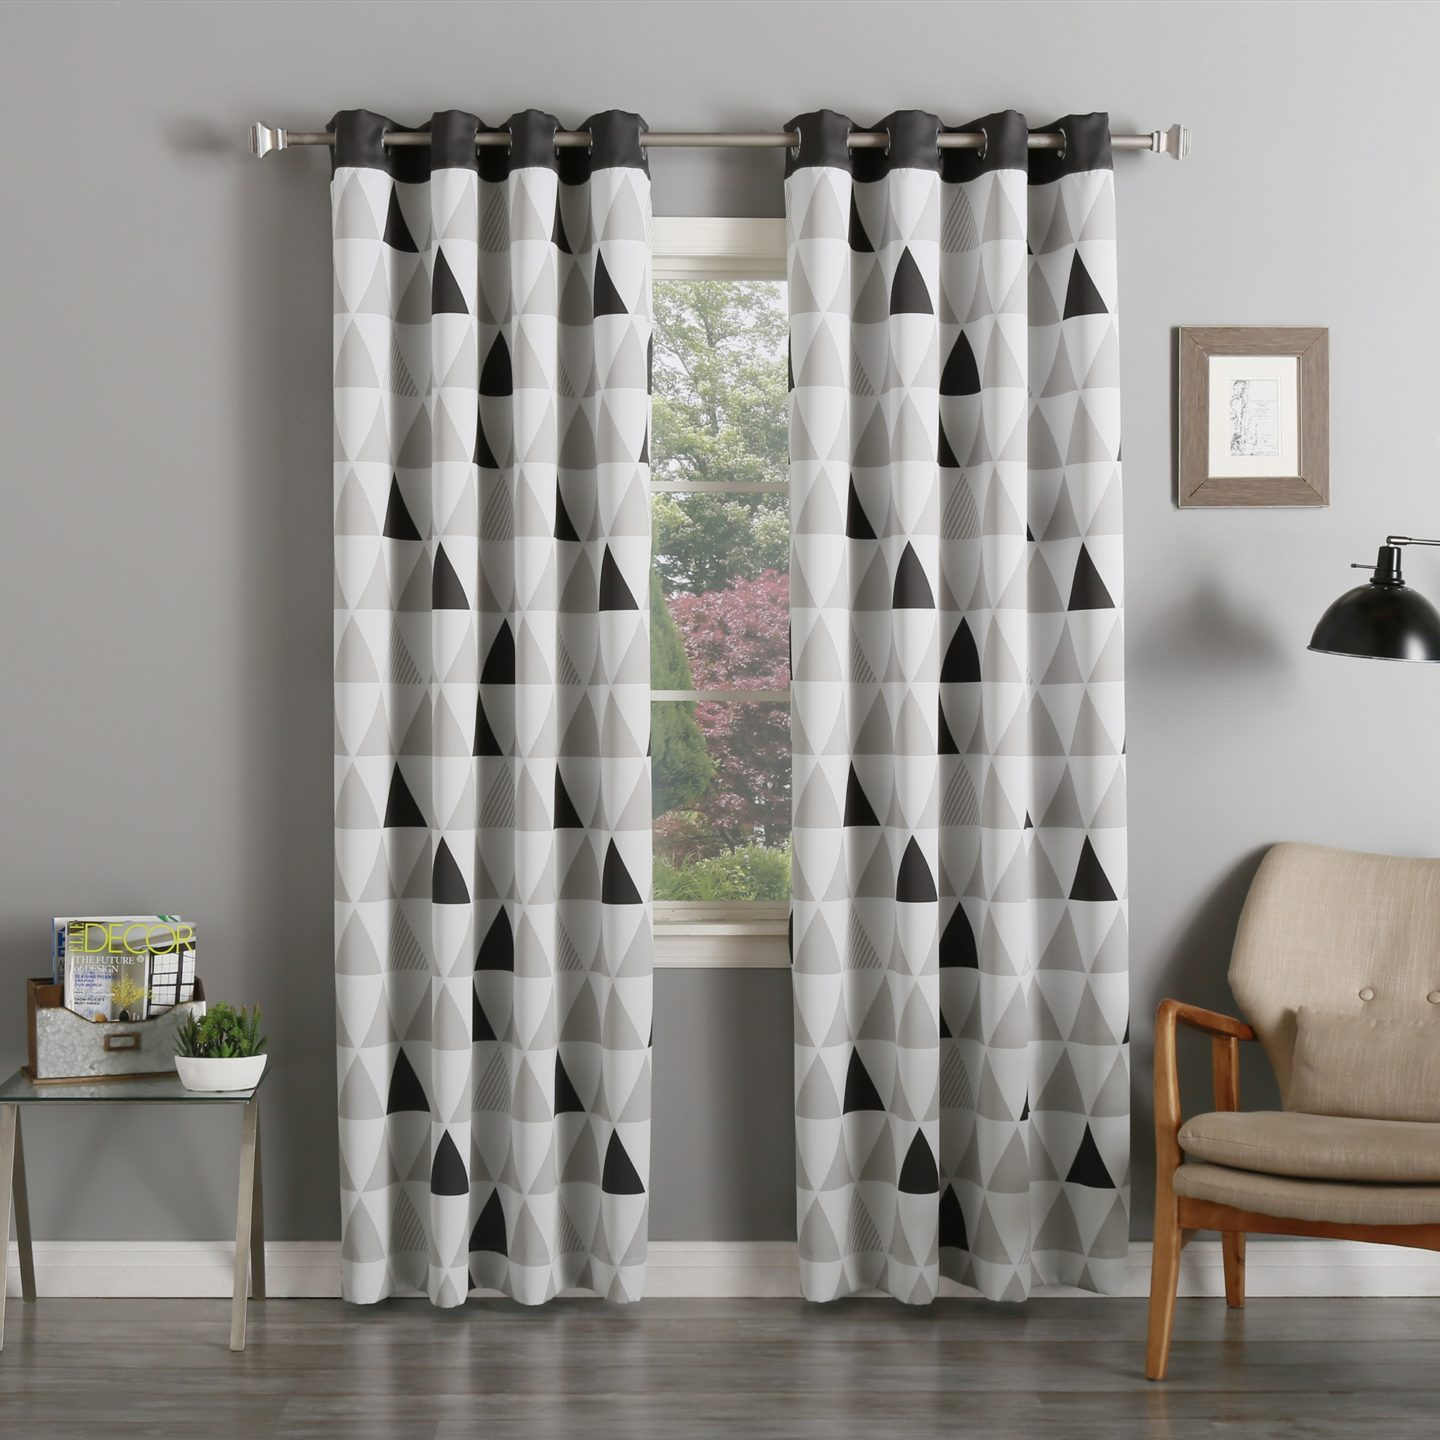 Black White And Grey Geometric Thermal Curtains